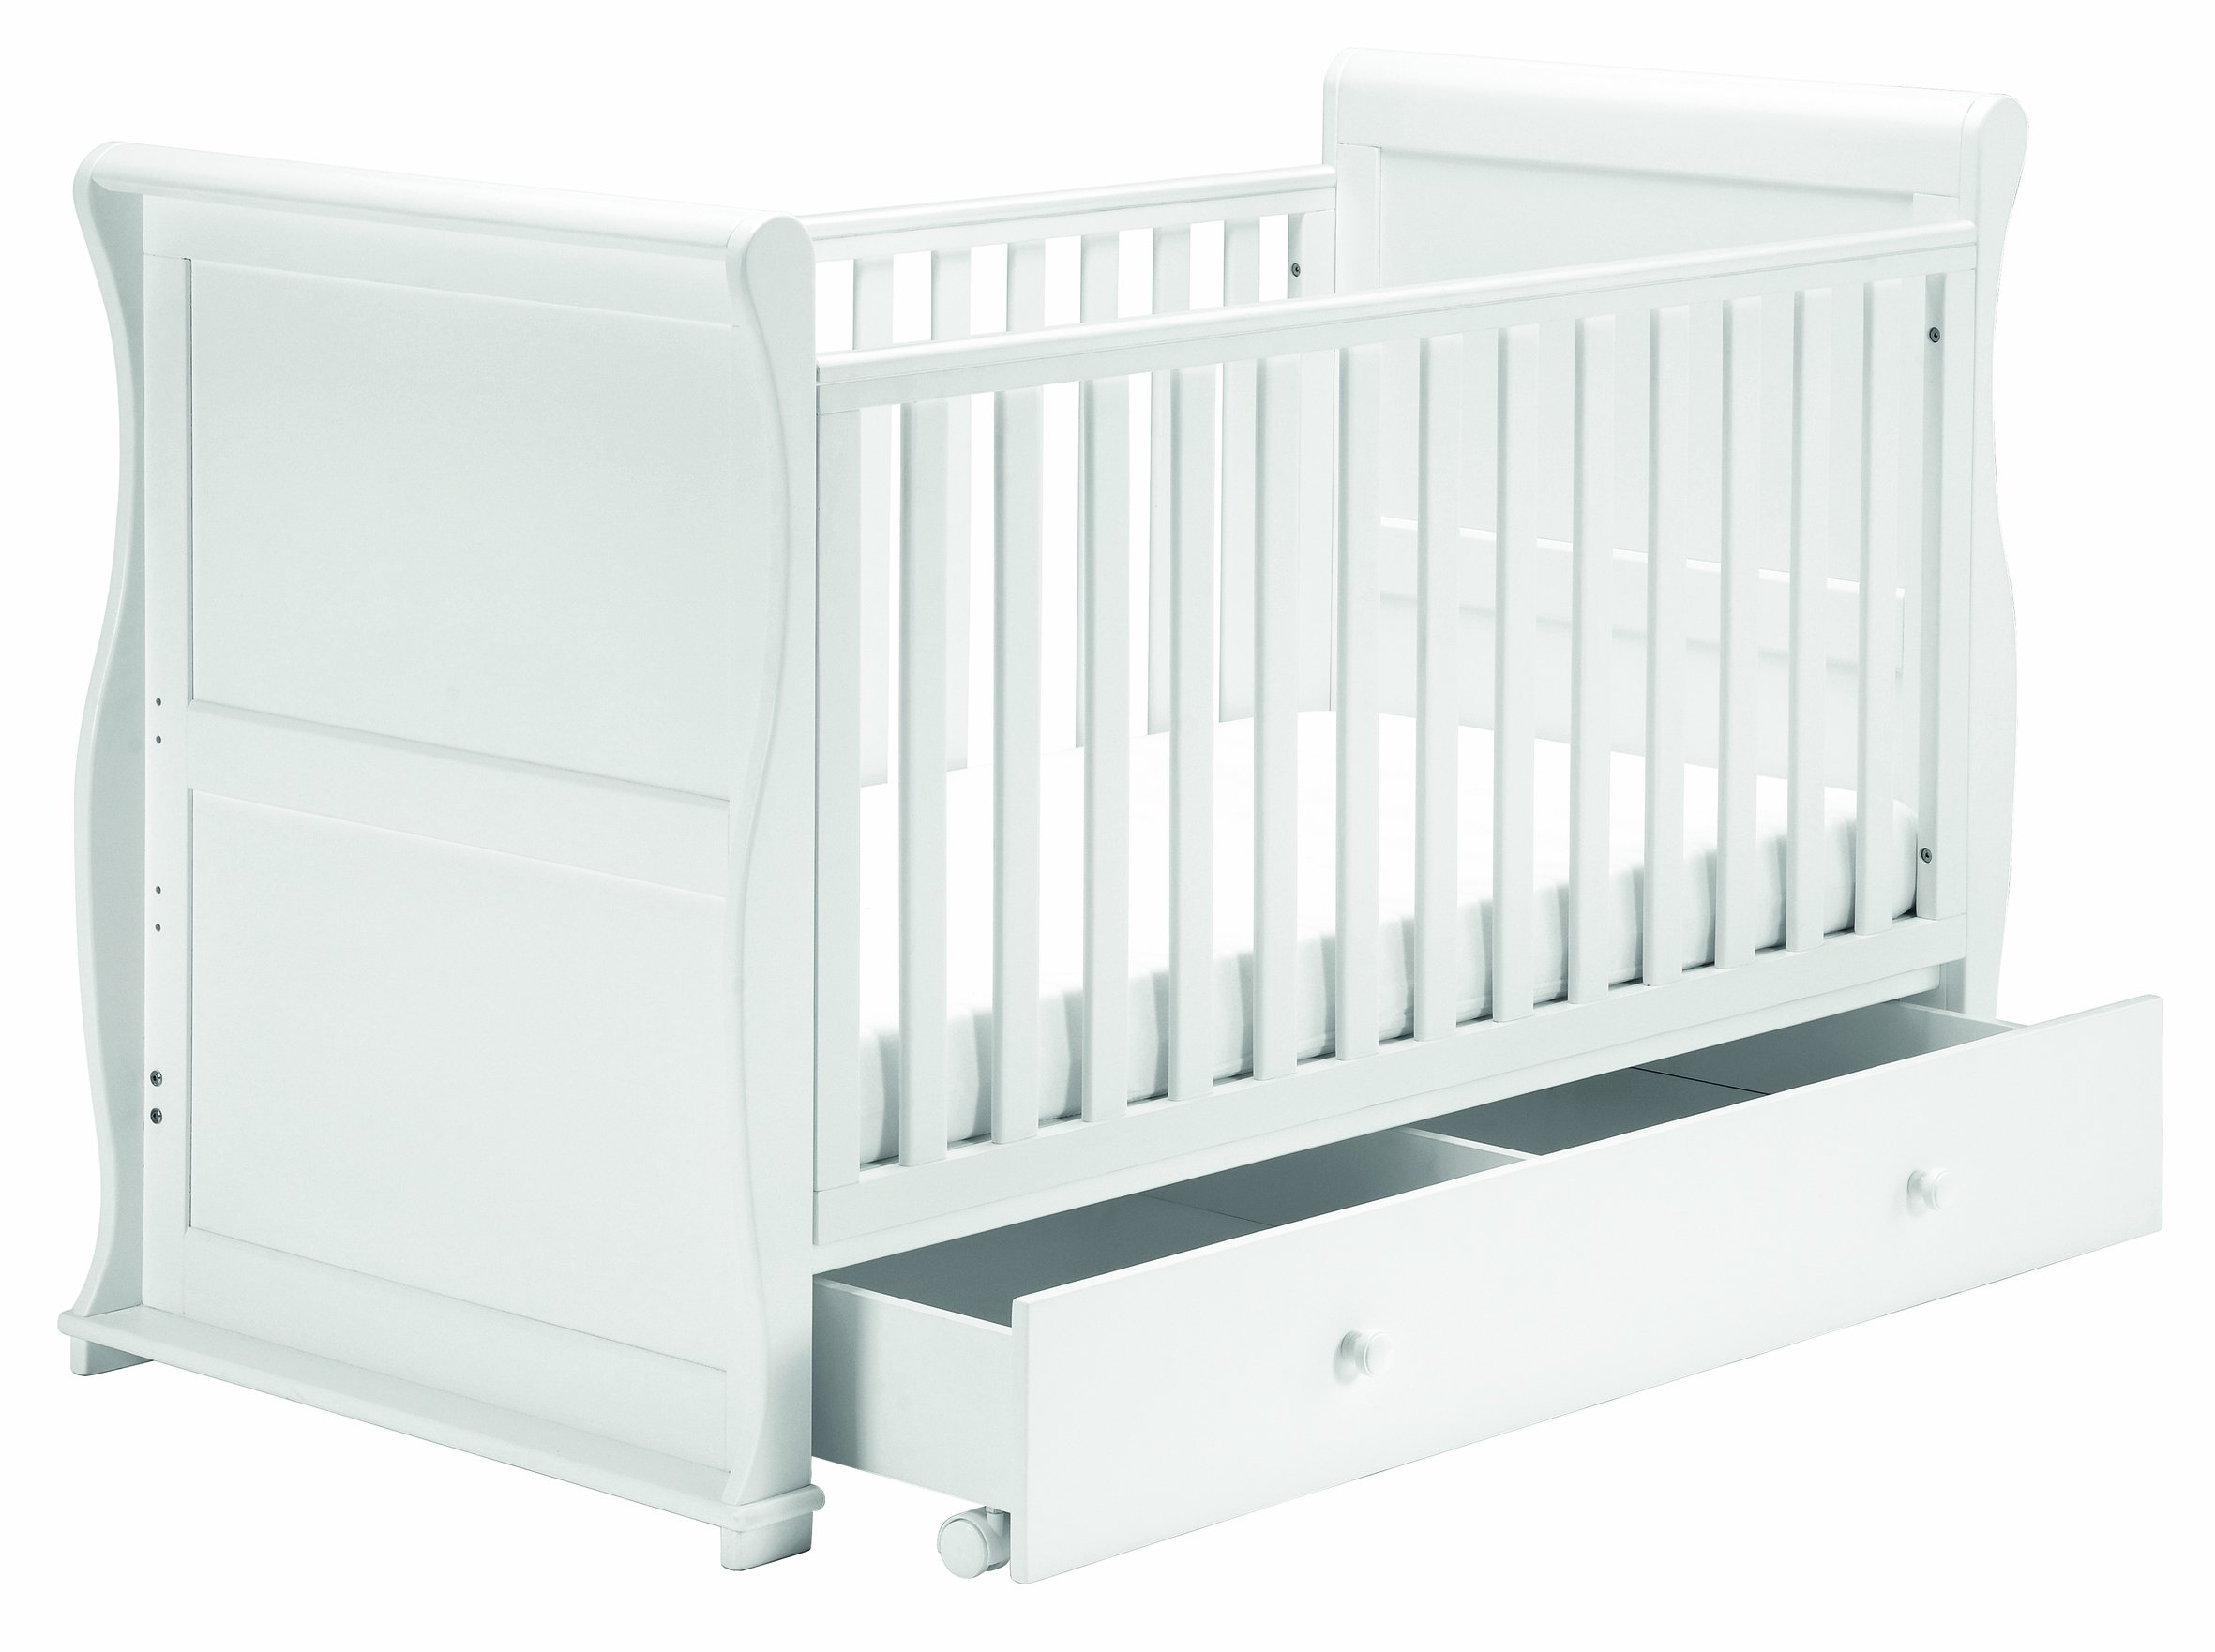 East Coast Nursery Alaska Sleigh Cotbed (White) East Coast Nursery Ltd 3 Base Heights 2 Fixed Sides Converts to day bed and toddler bed 1